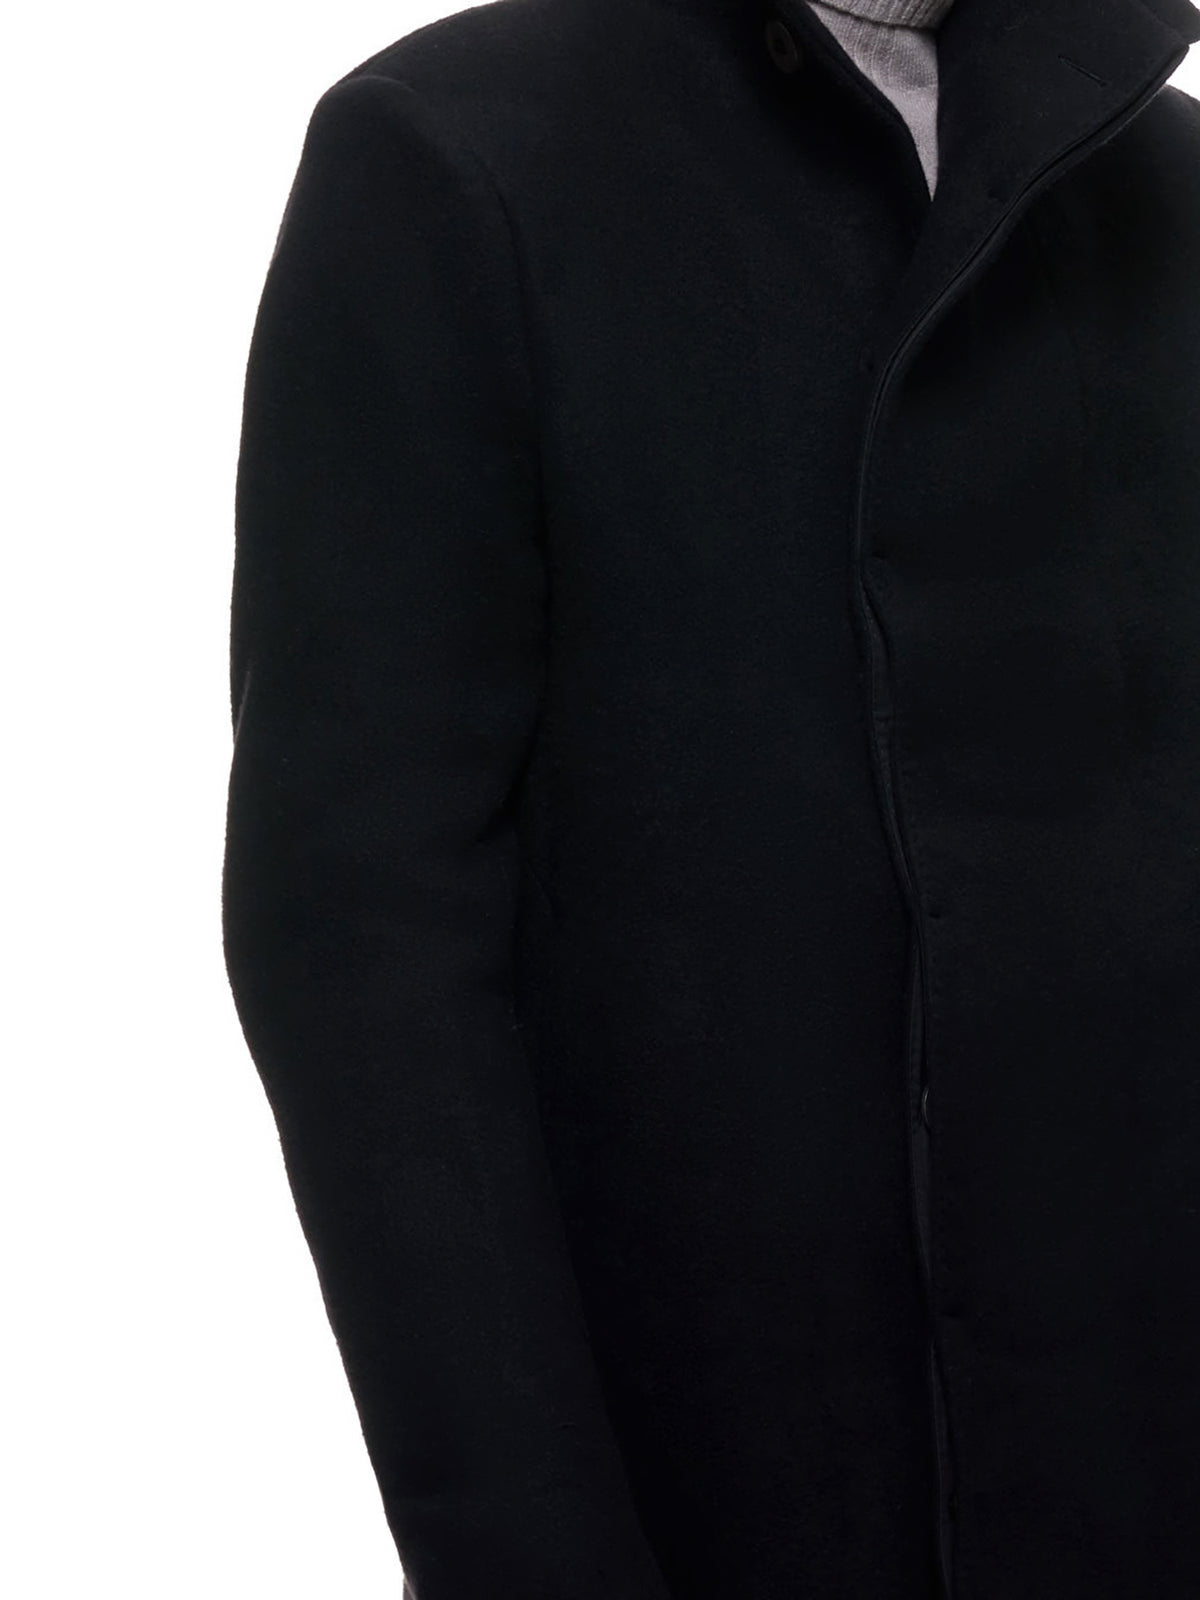 Mid Military Coat (COAT-MID-FFB10003-BLACK)